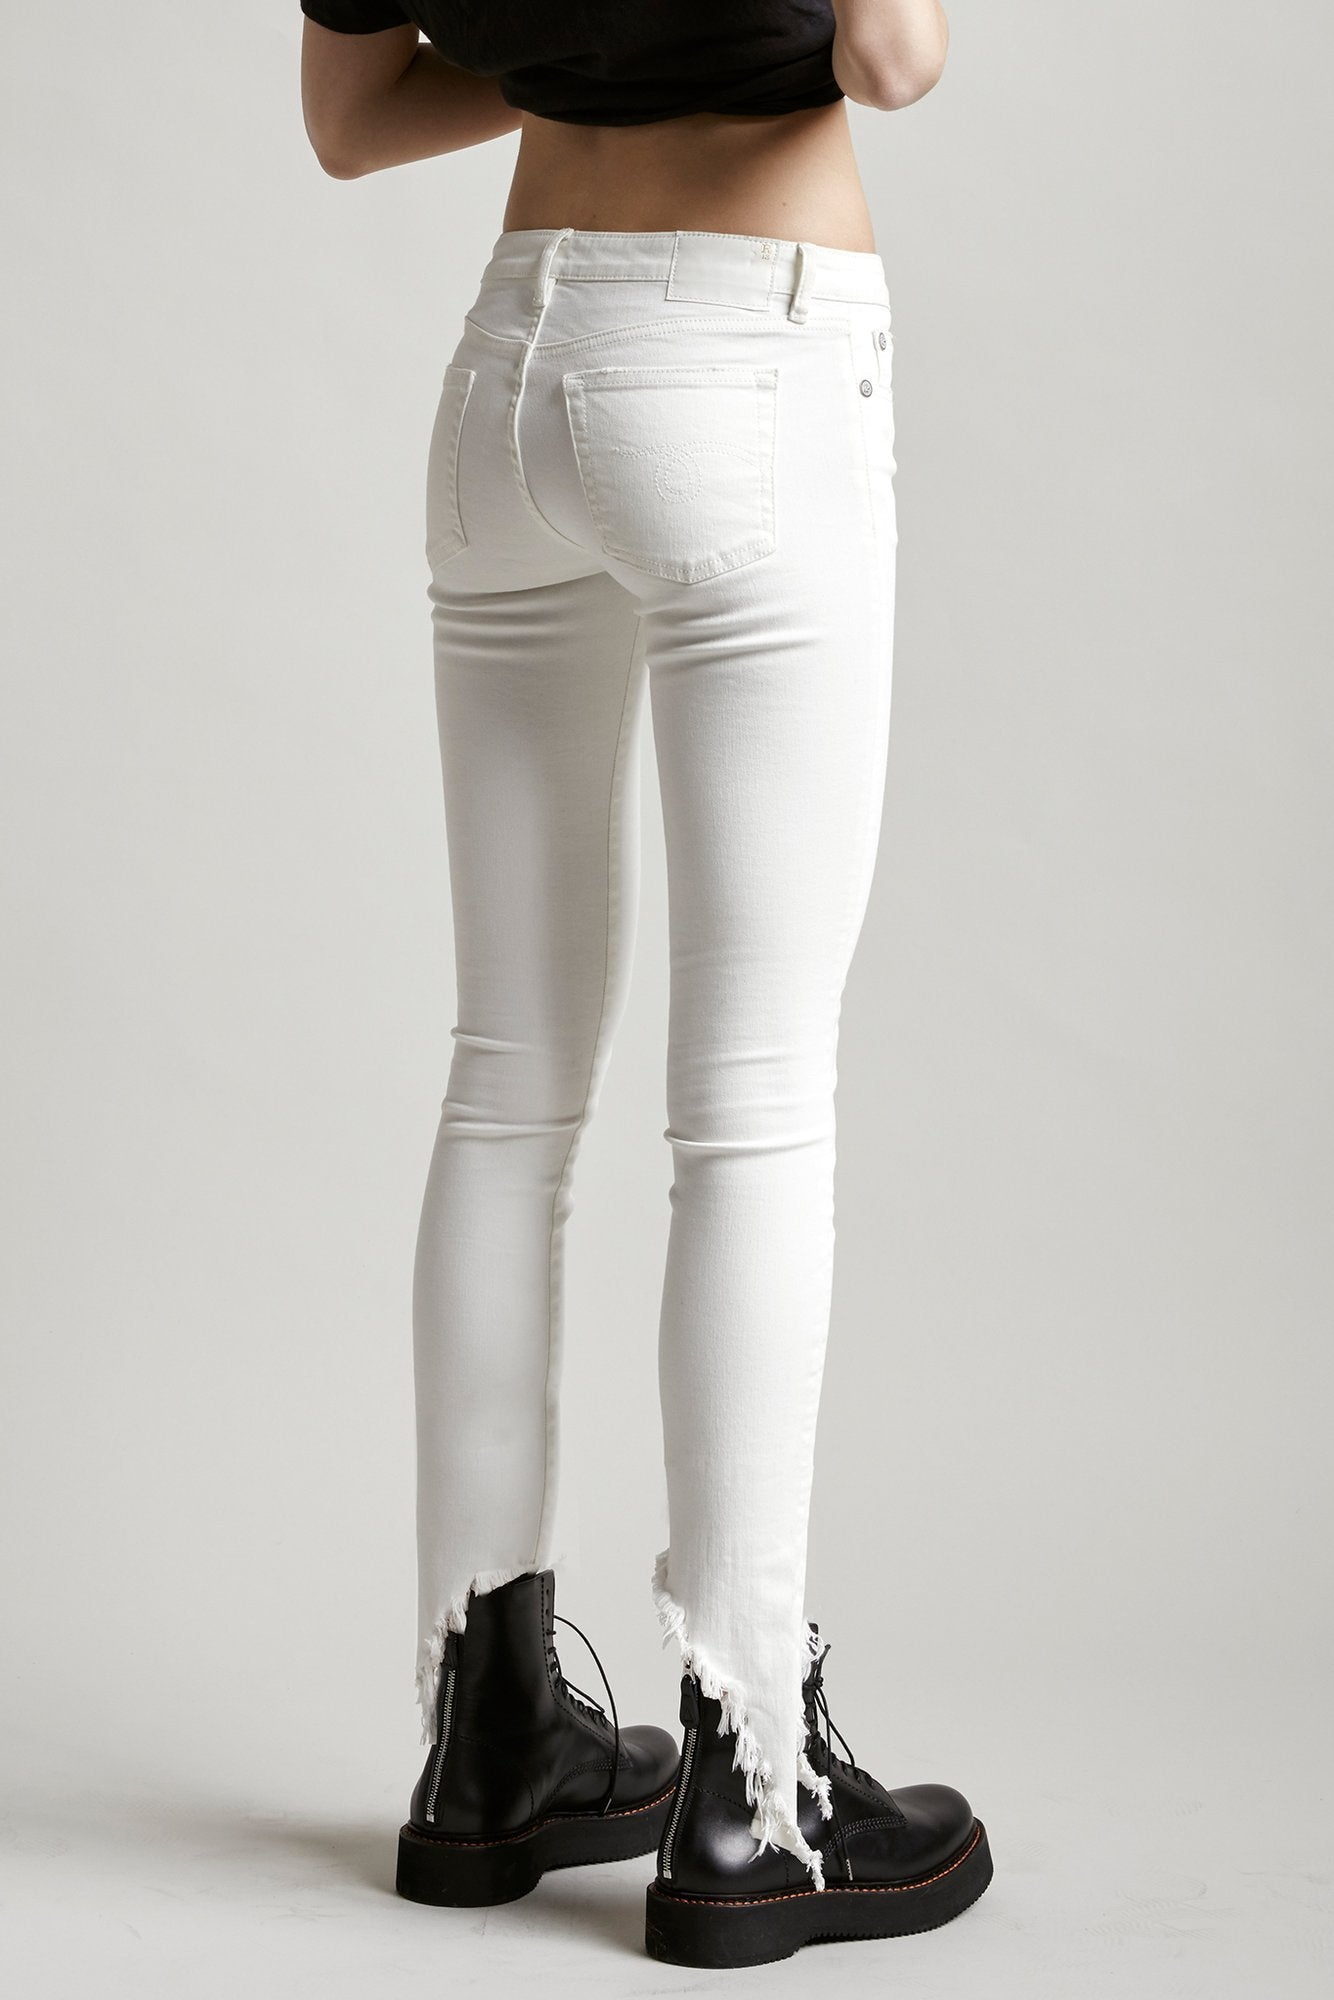 R13 Denim Kate Skinny tight low rise jean in white with angled hem